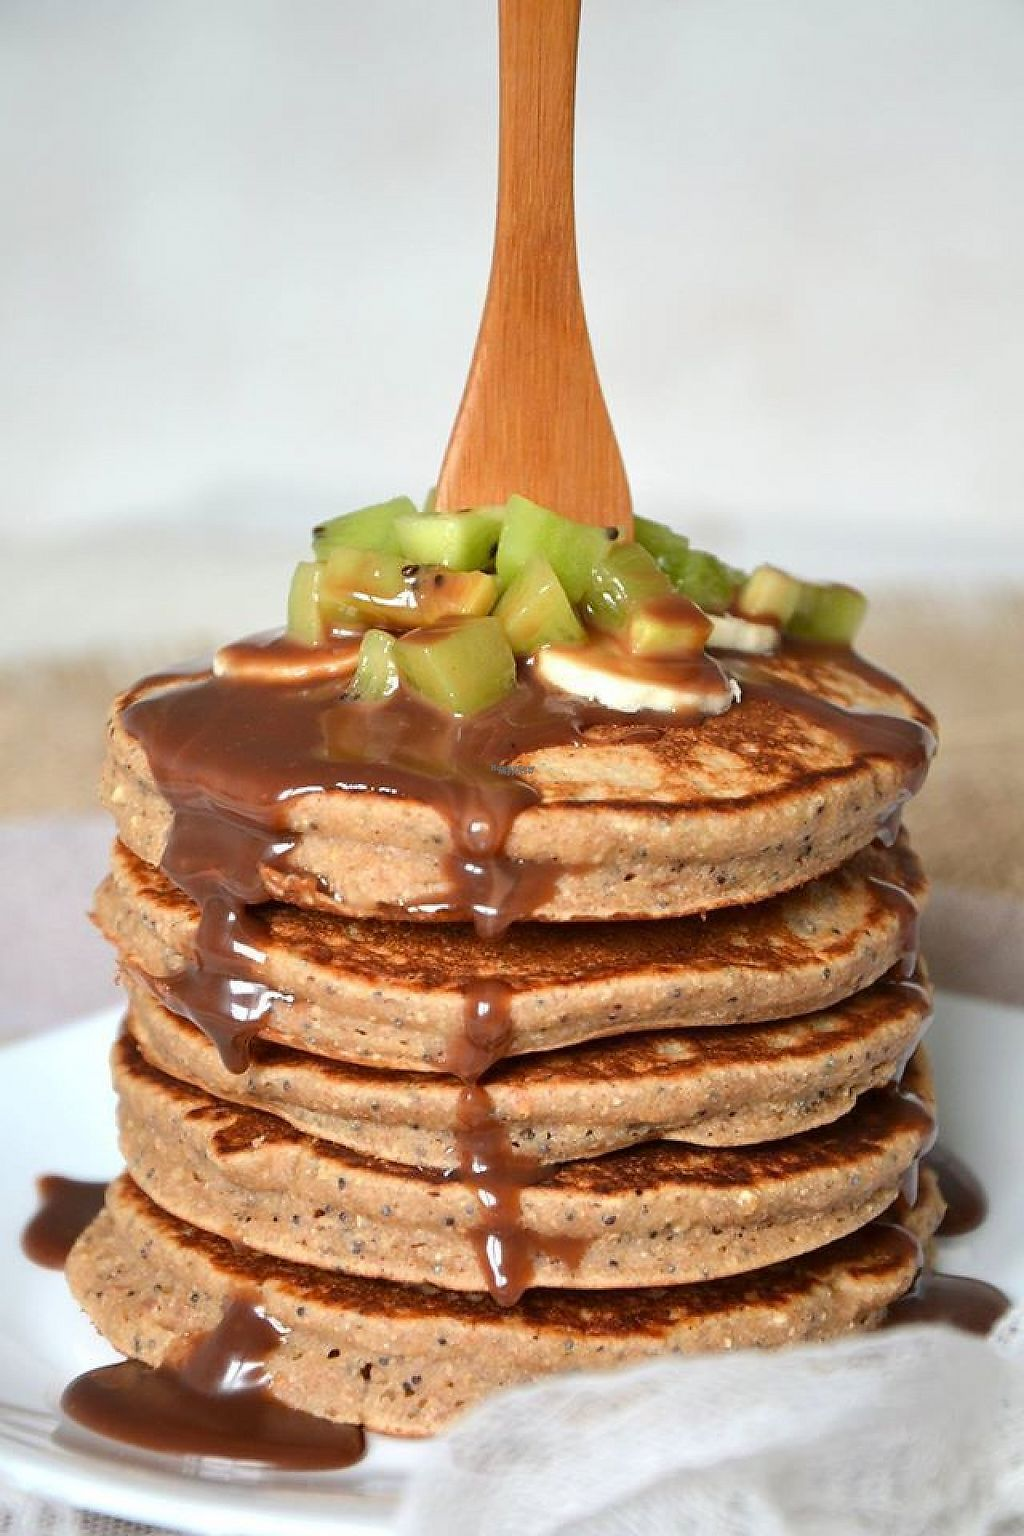 """Photo of La Vie Claire  by <a href=""""/members/profile/community"""">community</a> <br/>vegan pancakes  <br/> February 4, 2017  - <a href='/contact/abuse/image/72020/221867'>Report</a>"""